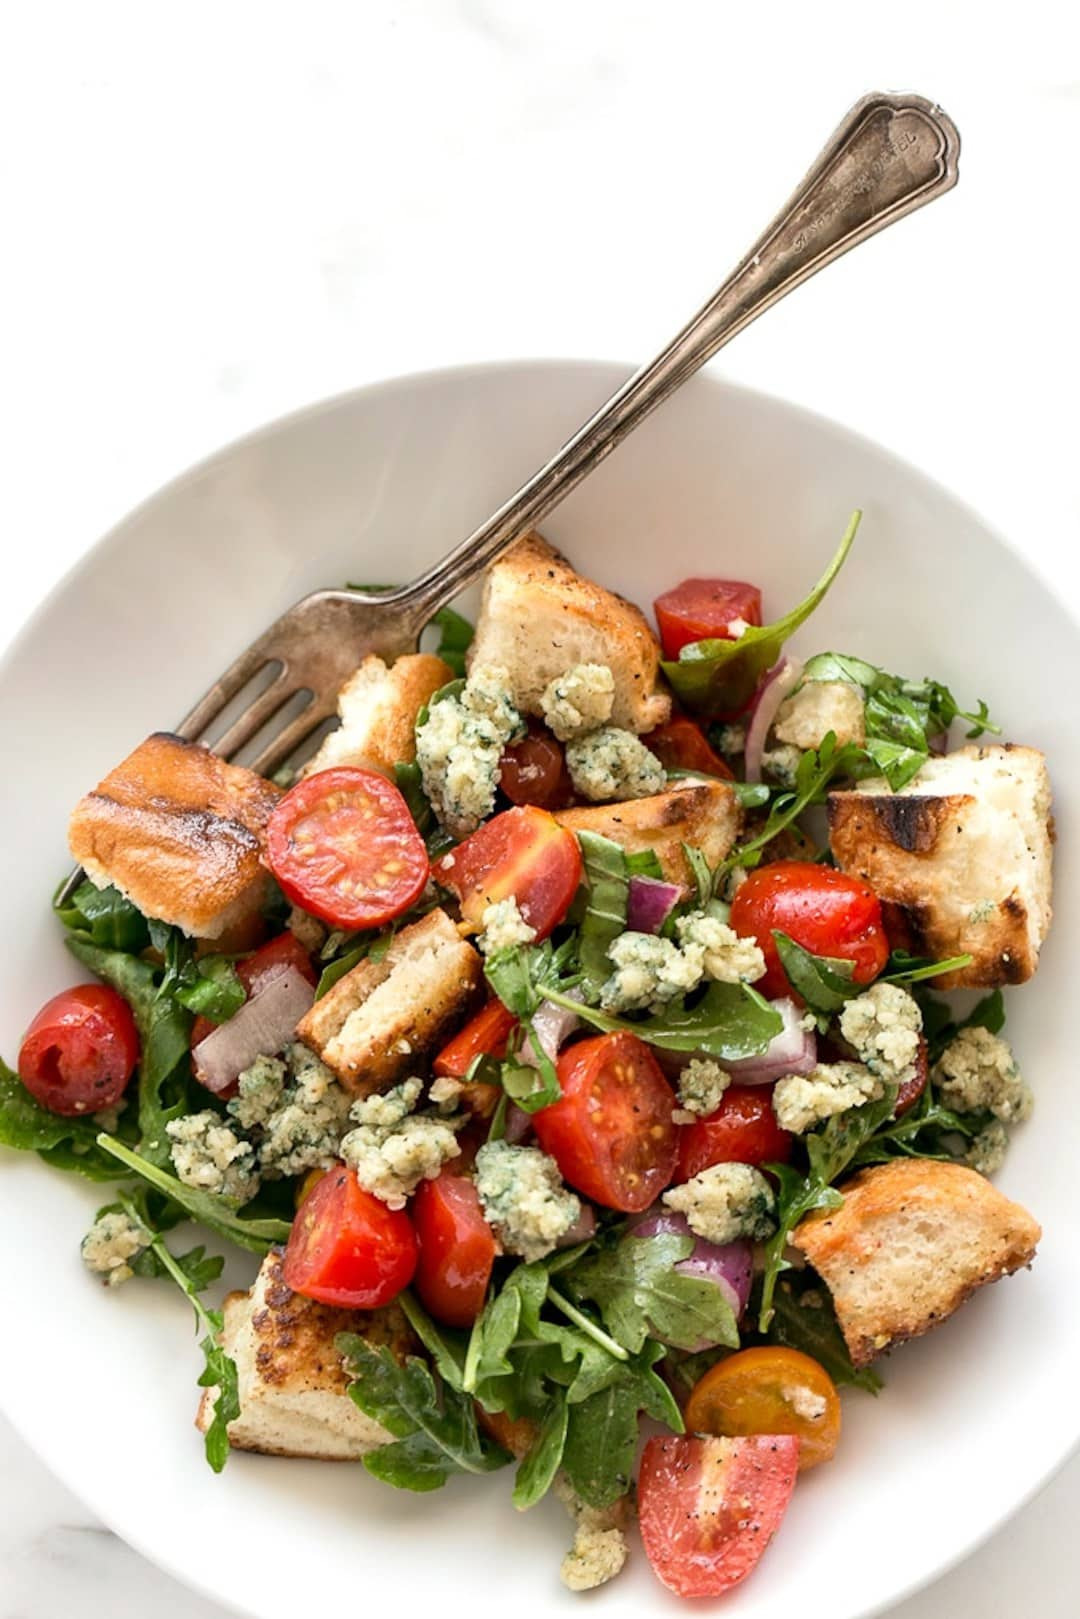 13+ Healthy Recipes with Hemp Hearts - Cherry Tomato Panzanella Salad with Hemp Blue Cheese (Vegan)